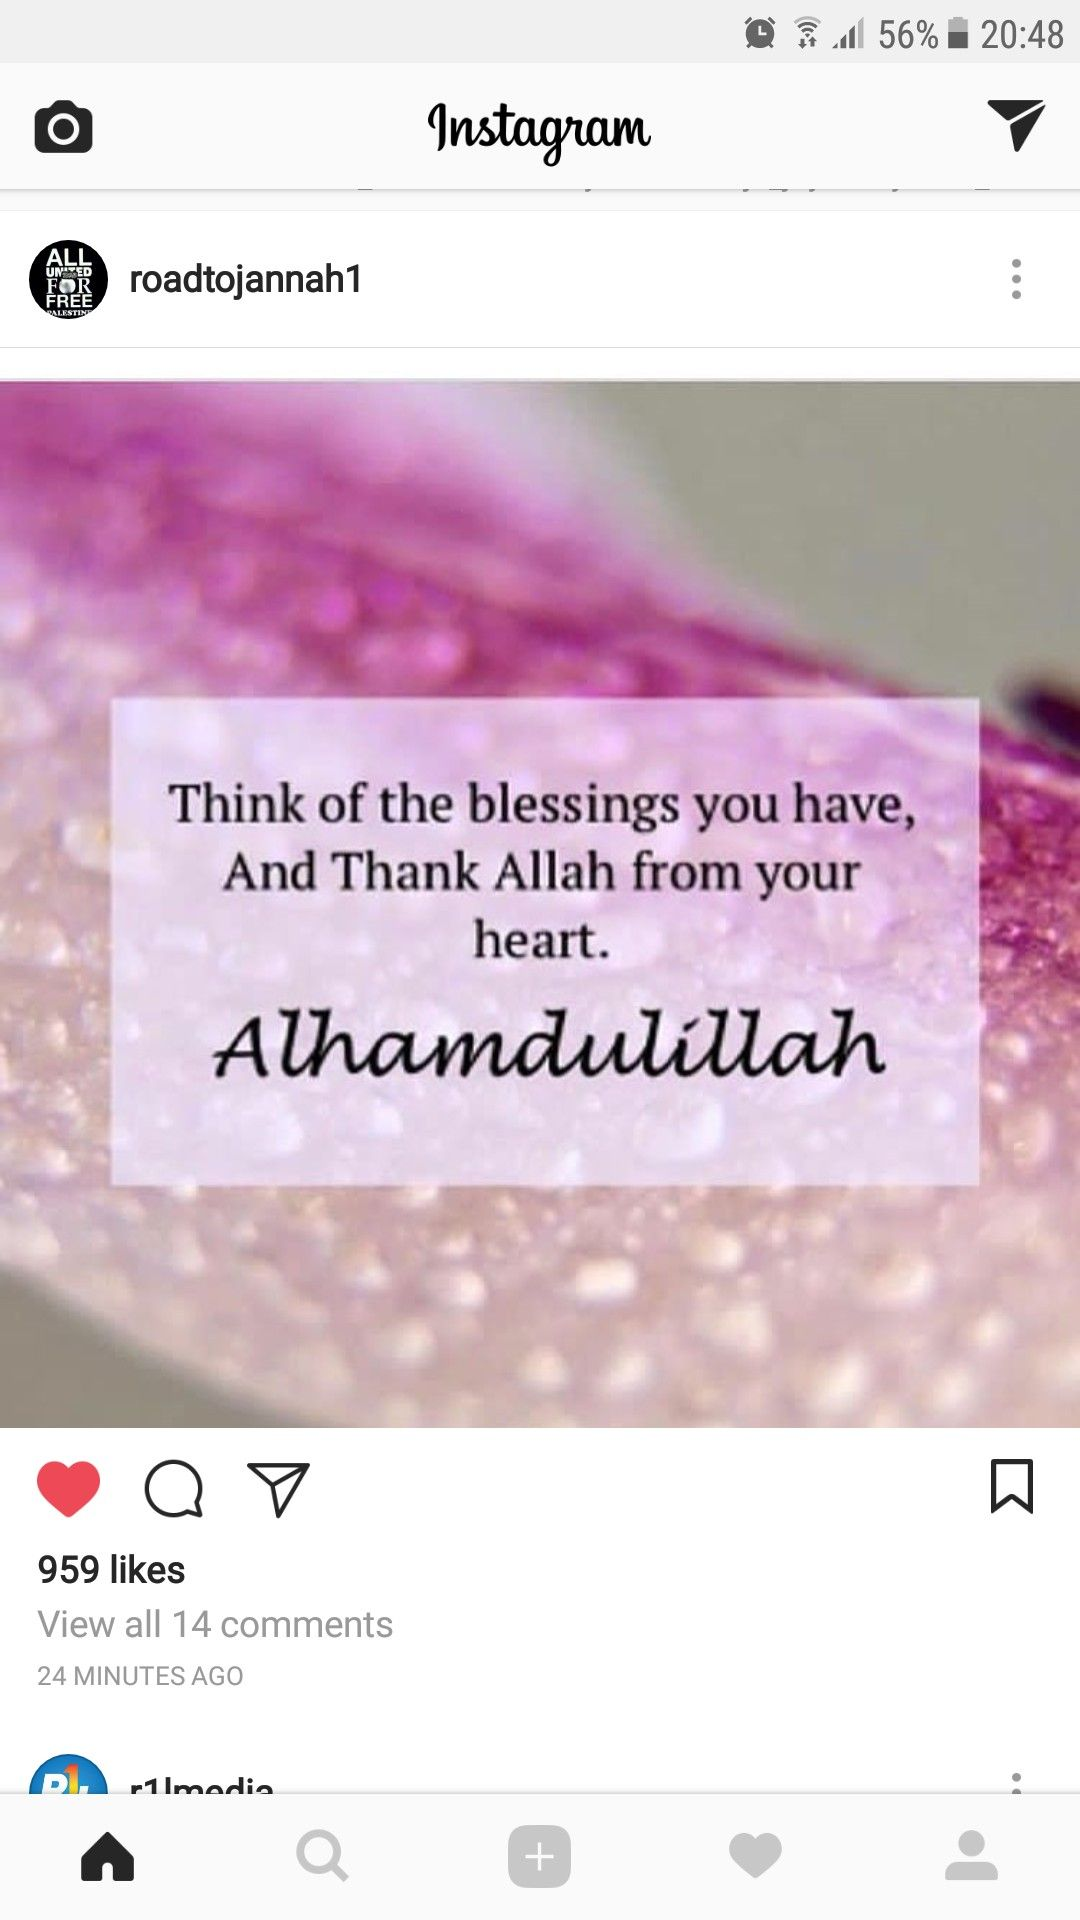 Pin by momina on i pinterest islam alhamdulillah and islamic islamic quotes alhamdulillah deen quotation quran fun facts allah prayers religion thecheapjerseys Gallery